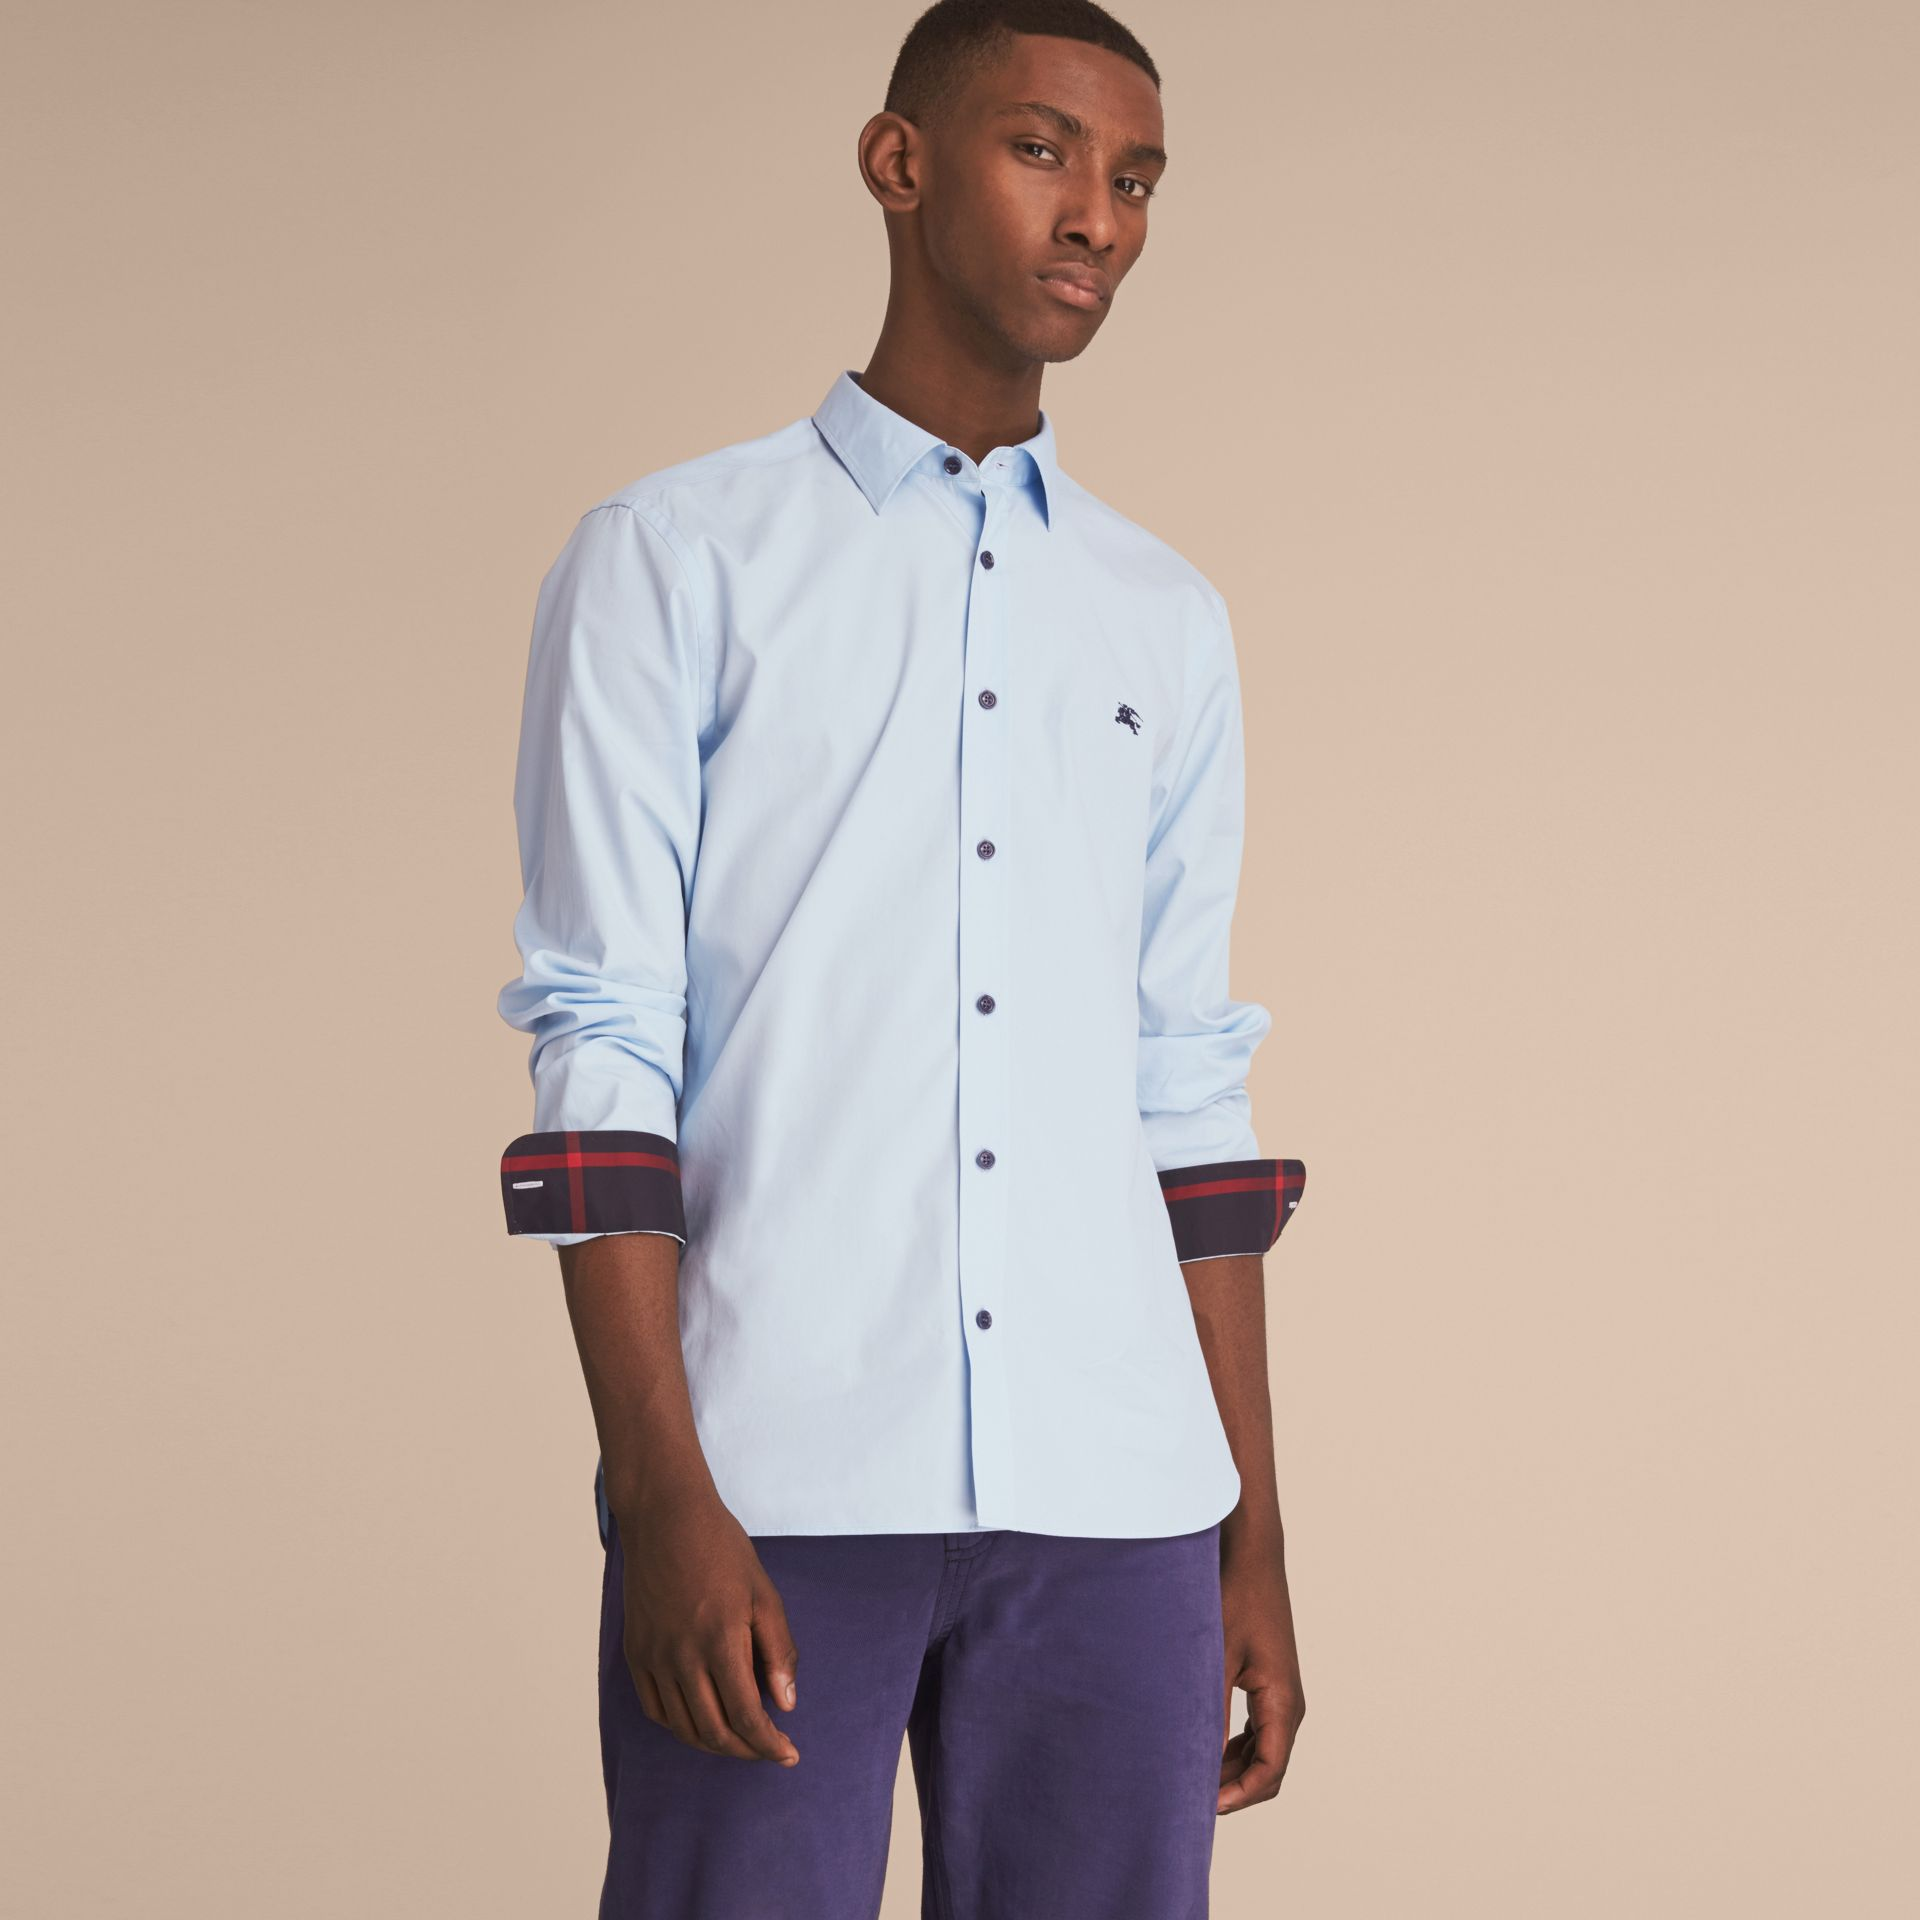 Resin Button Cotton Poplin Shirt in Pale Blue - Men | Burberry - gallery image 6